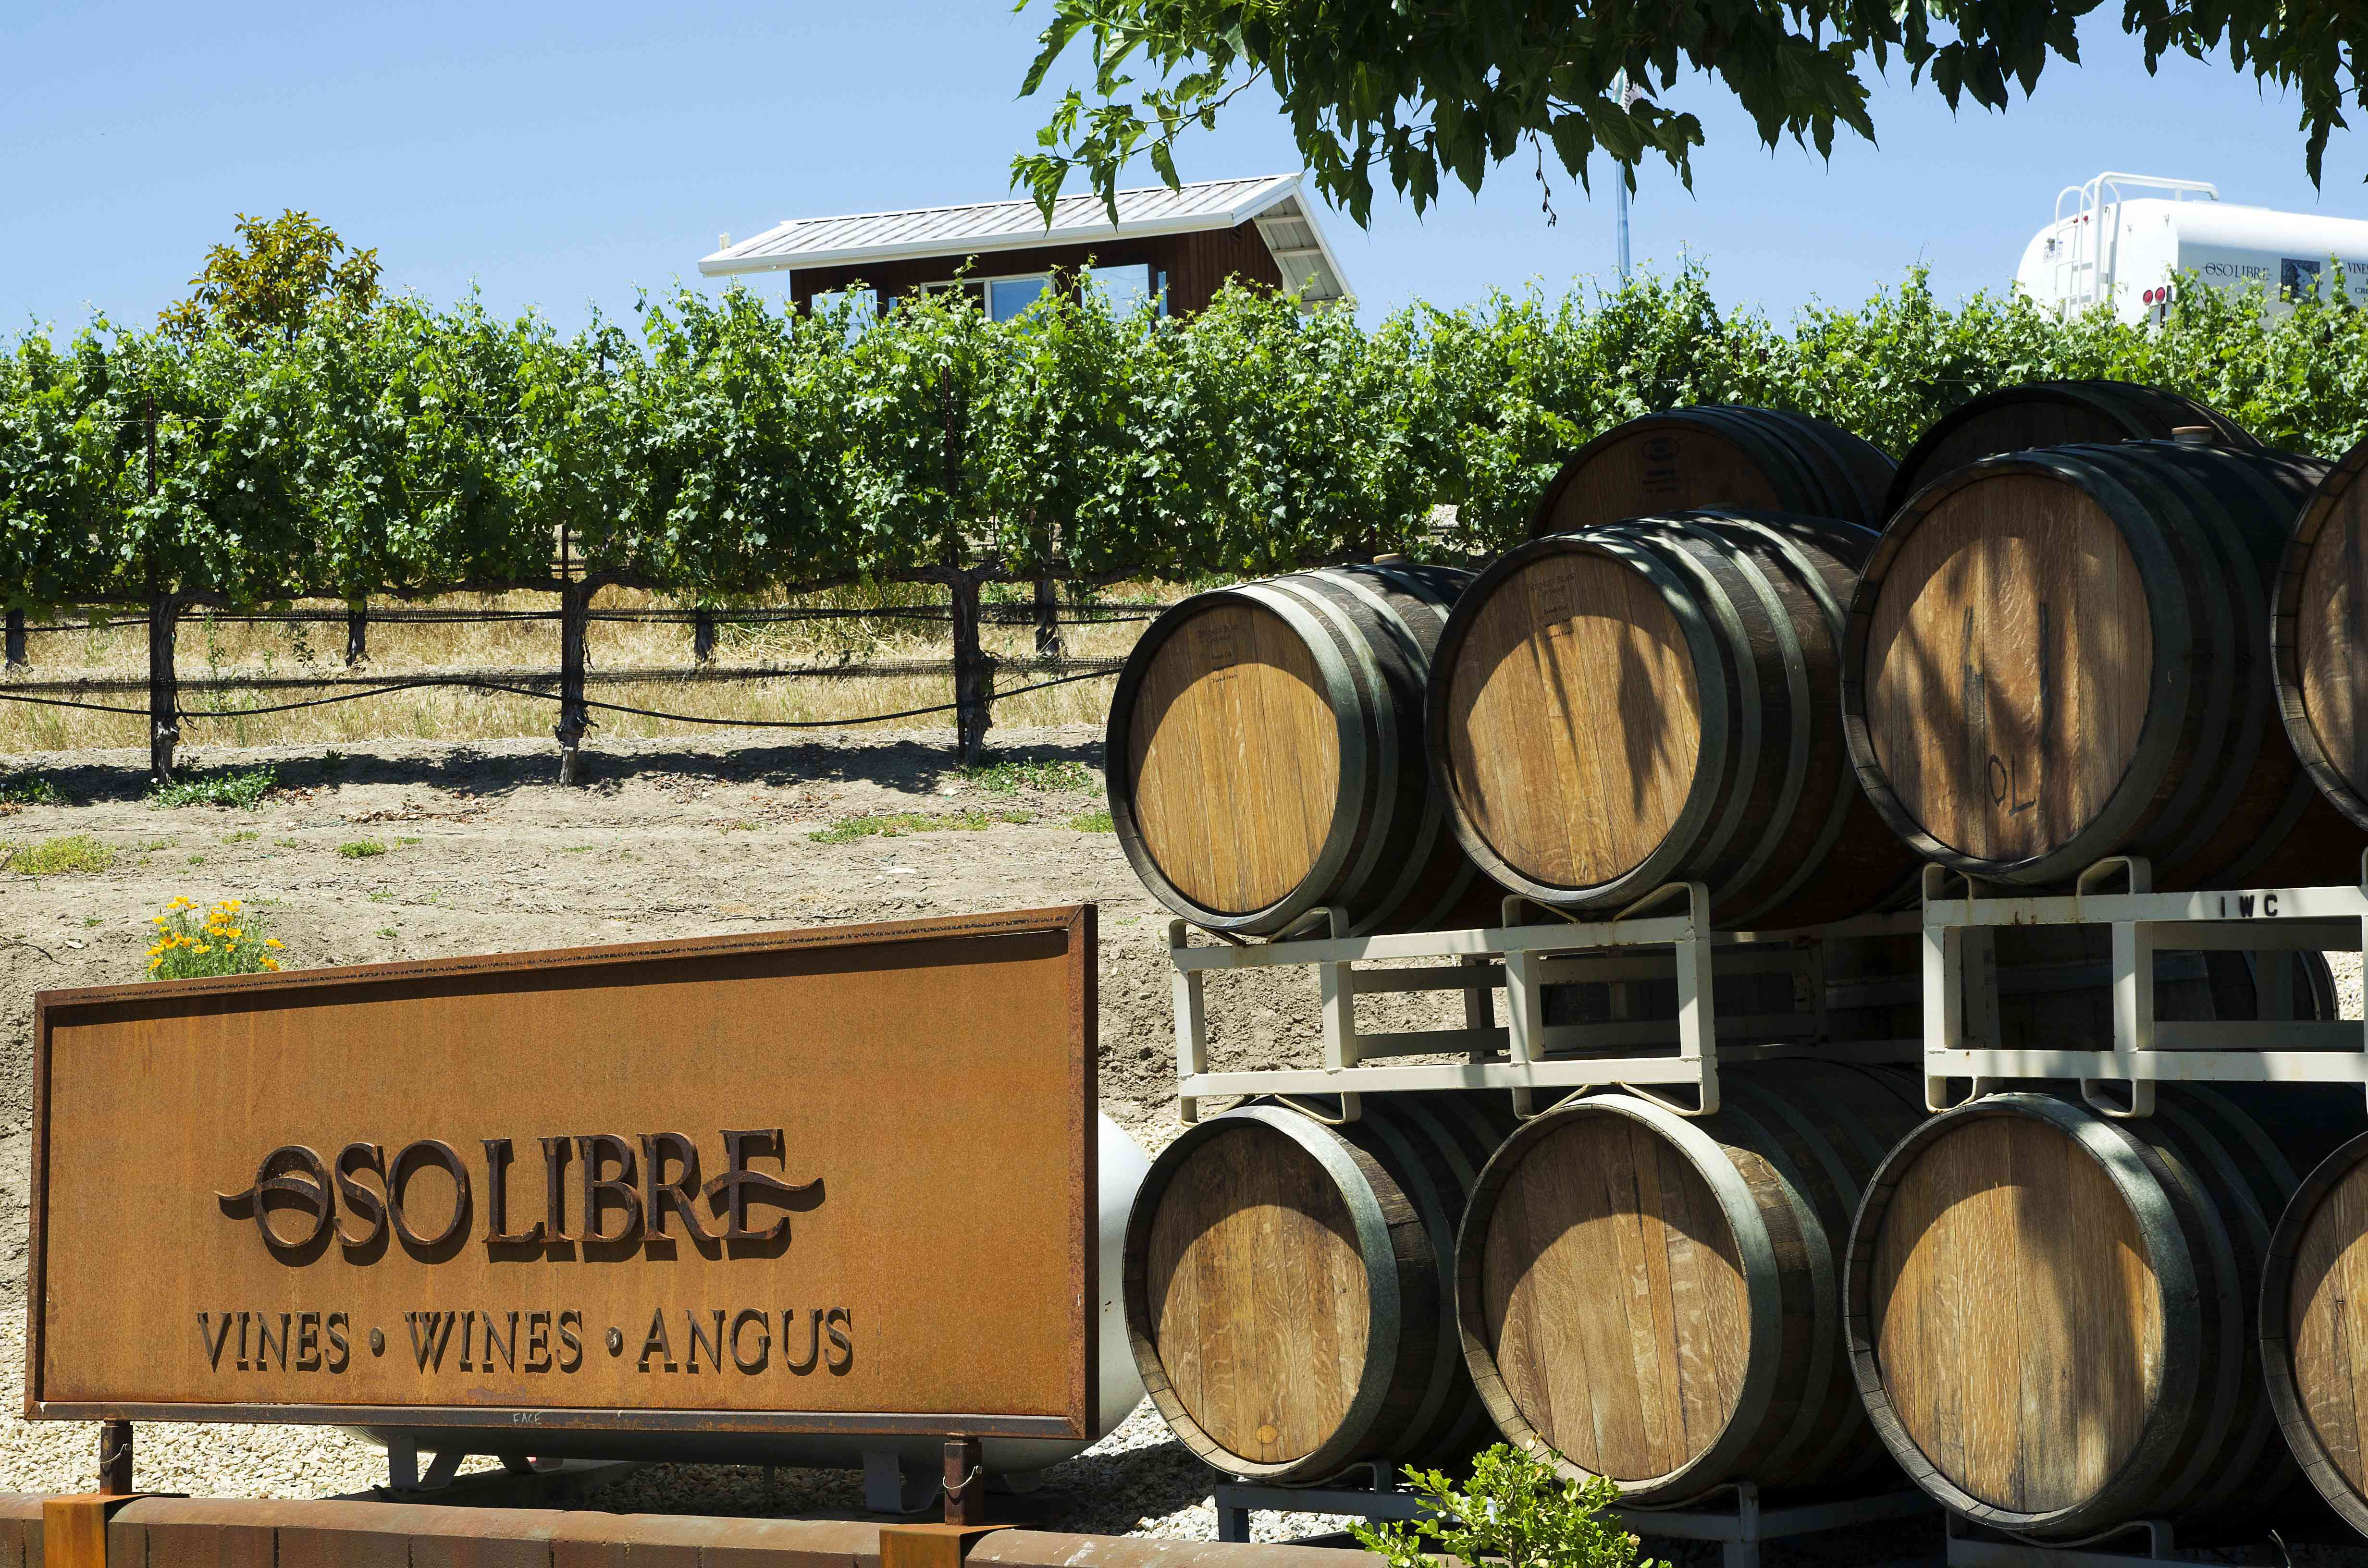 The front of a winery with a sign that says Oso Libre beside barrels.